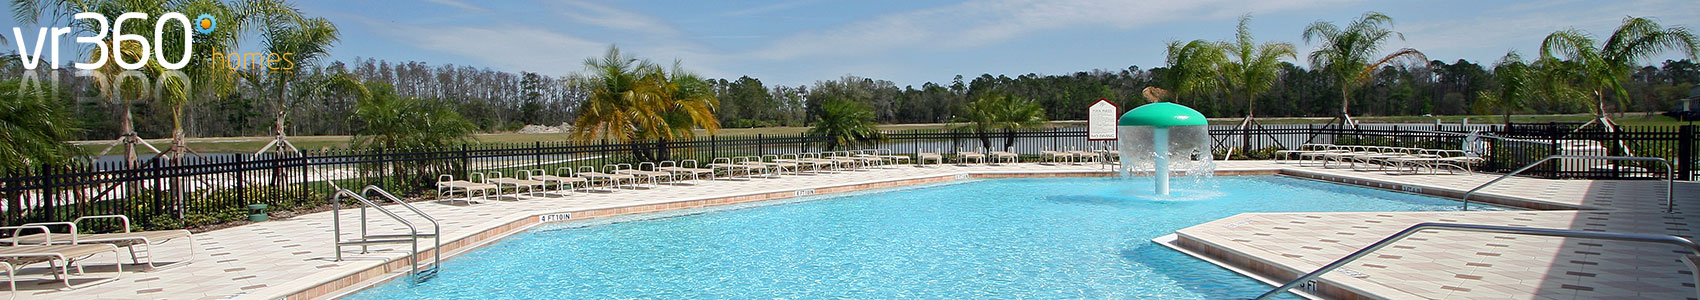 Trafalgar Village Villas and Vacation Rentals in Kissimmee Florida